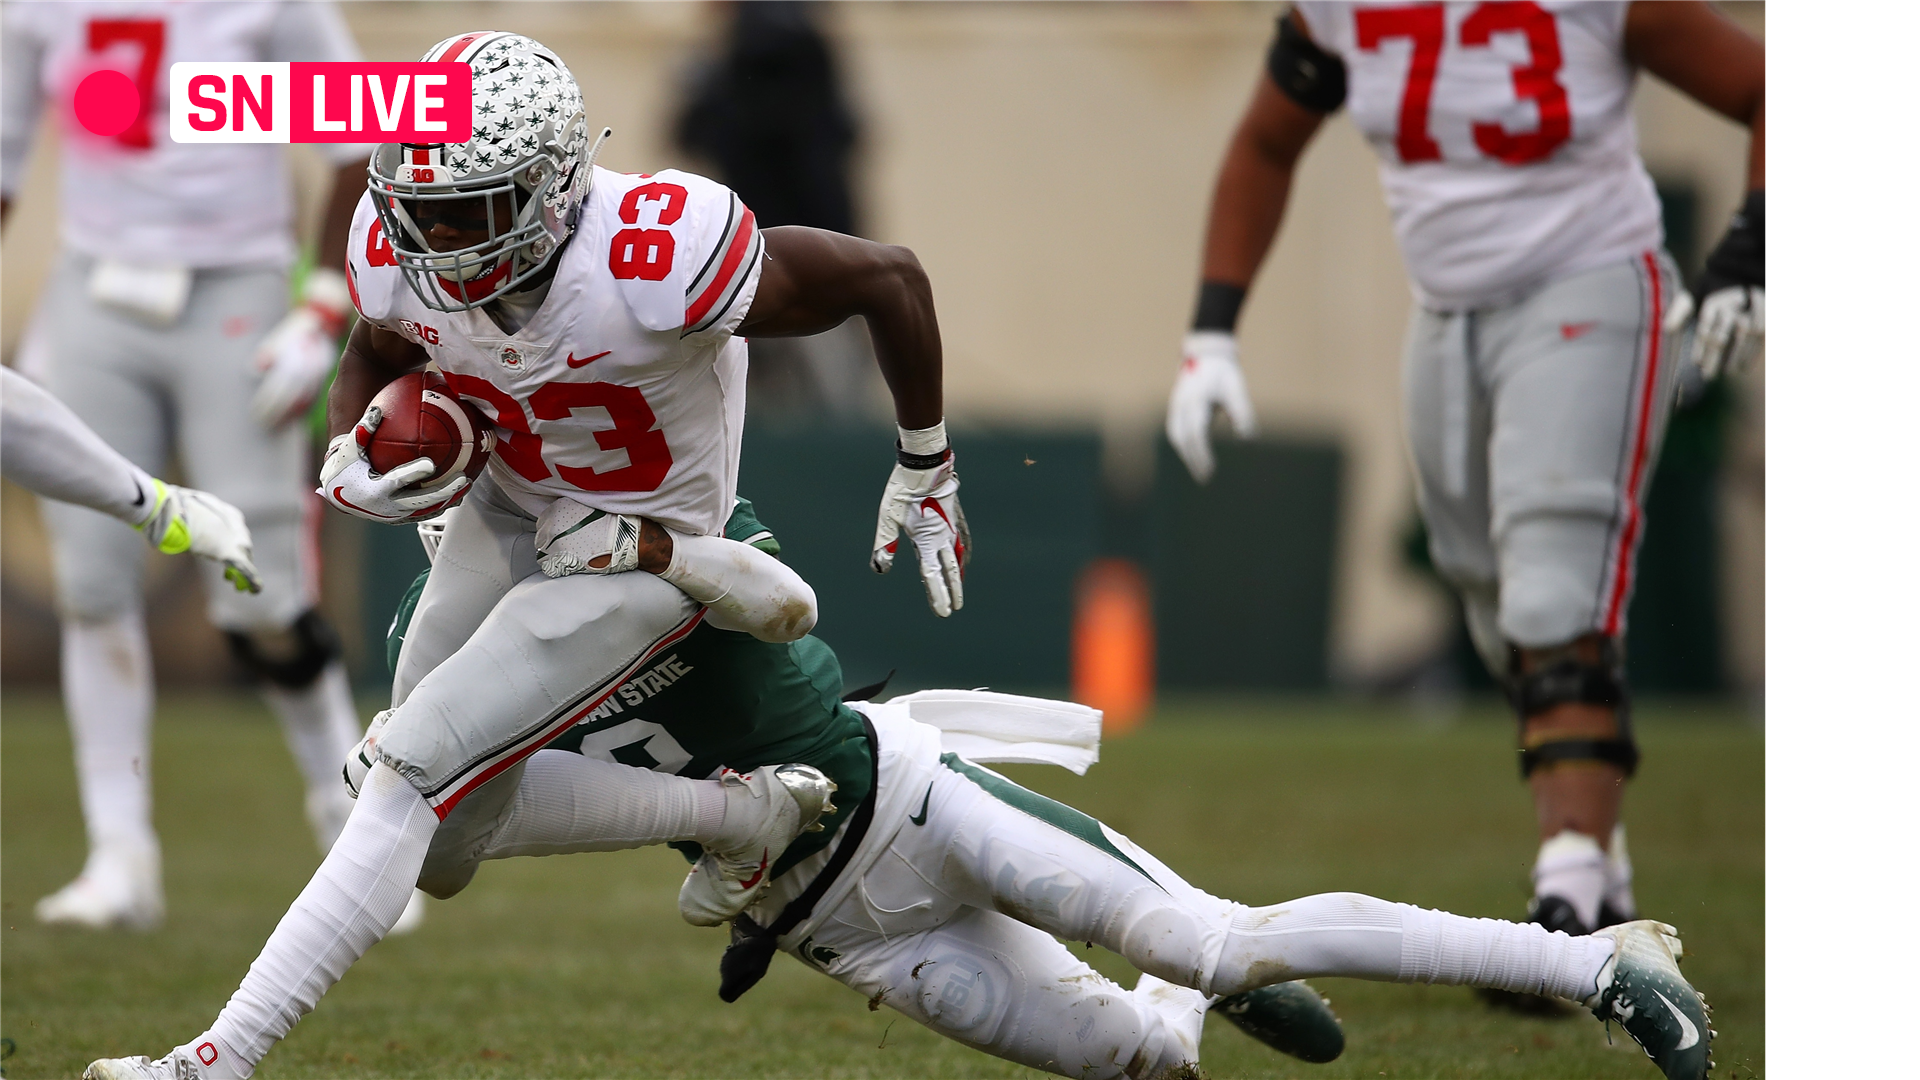 Ohio State Vs. Michigan State: Score, Live Updates, Highlights from Buckeyes & # 39; visit to East Lansing